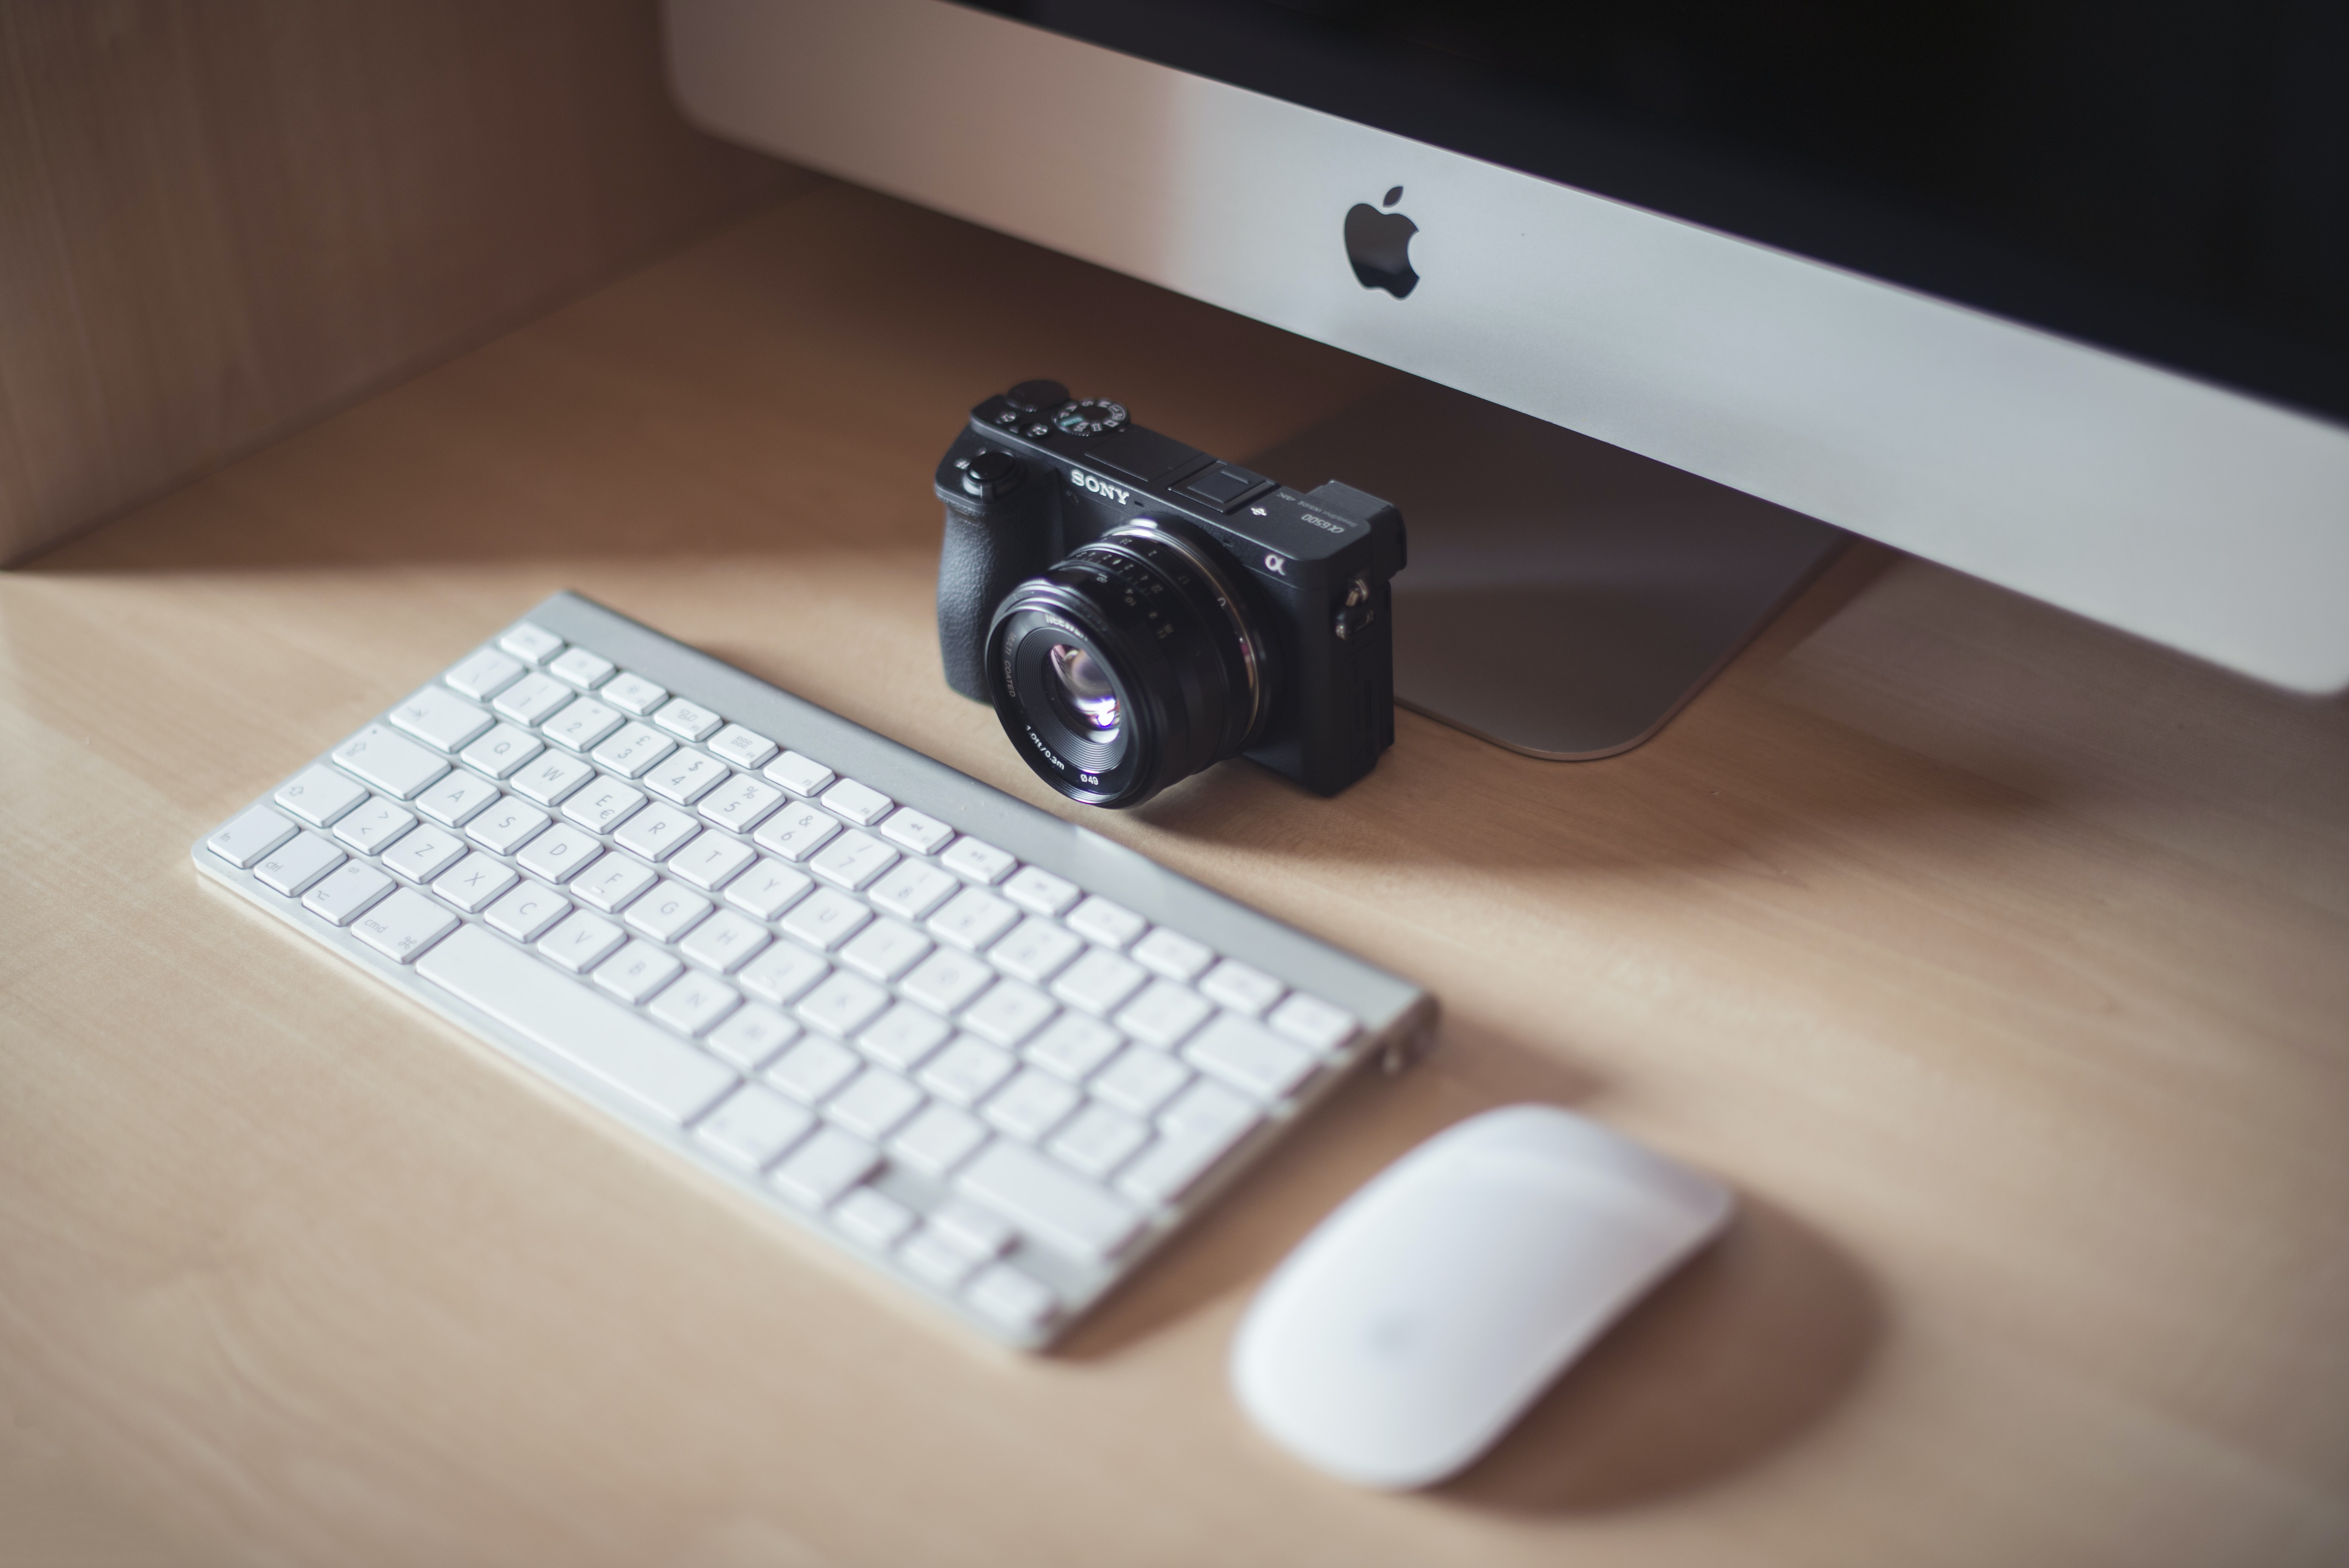 DLSR beside Apple magic keyboard and mouse